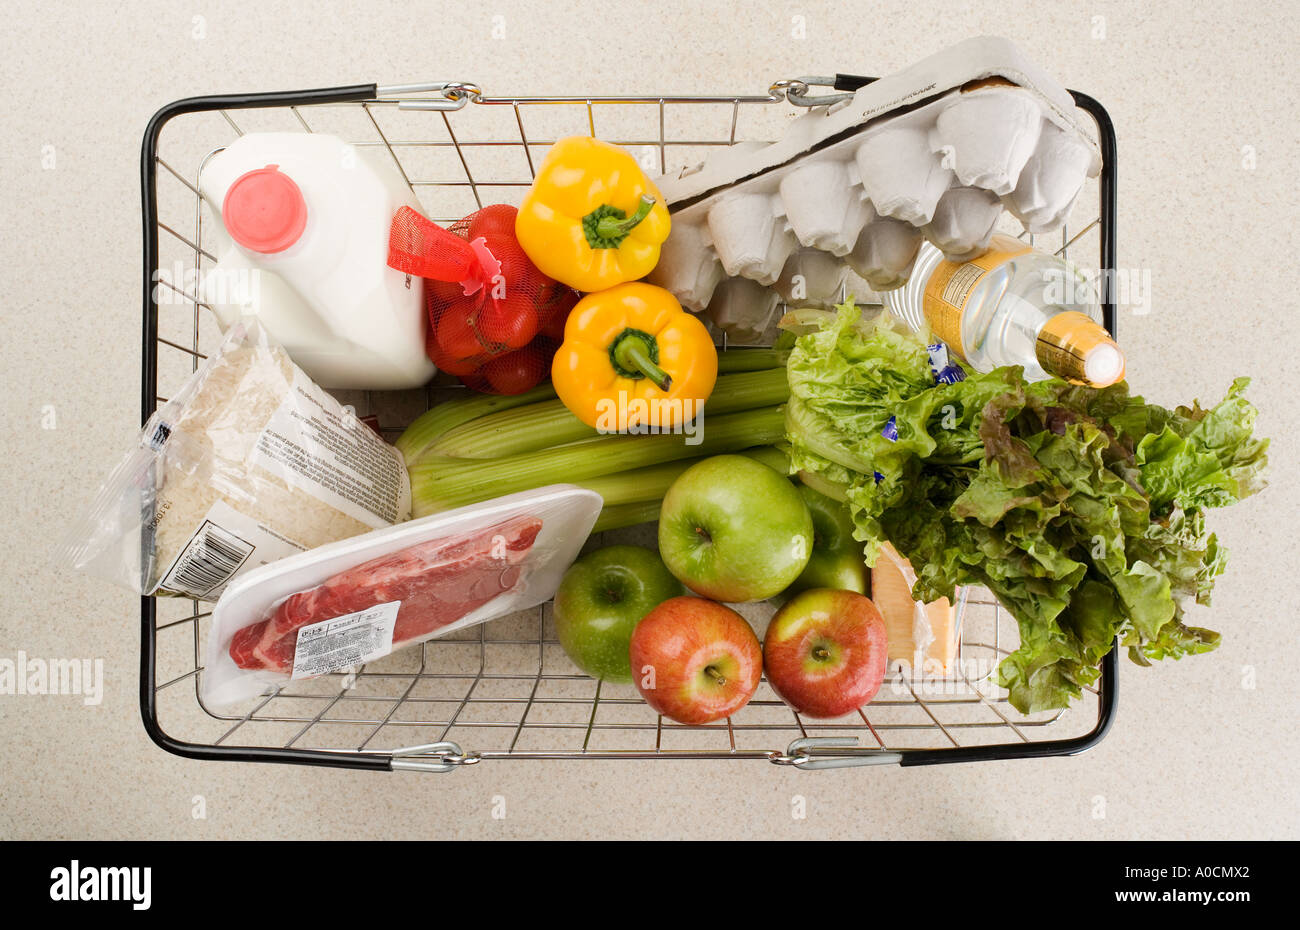 Overhead view of groceries in basket - Stock Image